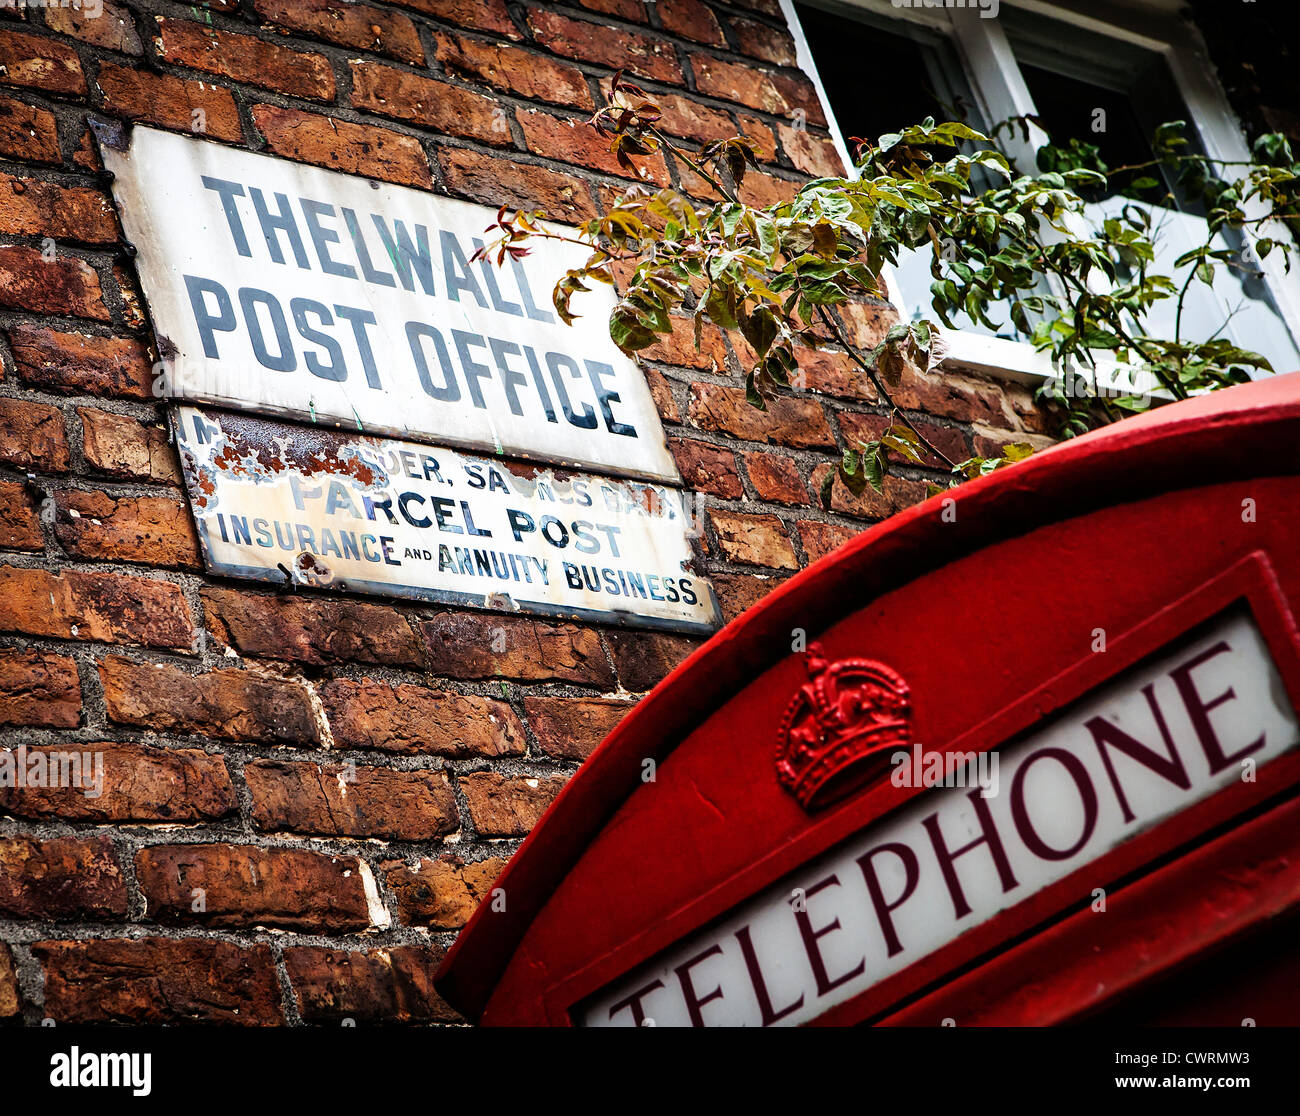 old sign outside post office stockfotos old sign outside post office bilder alamy. Black Bedroom Furniture Sets. Home Design Ideas